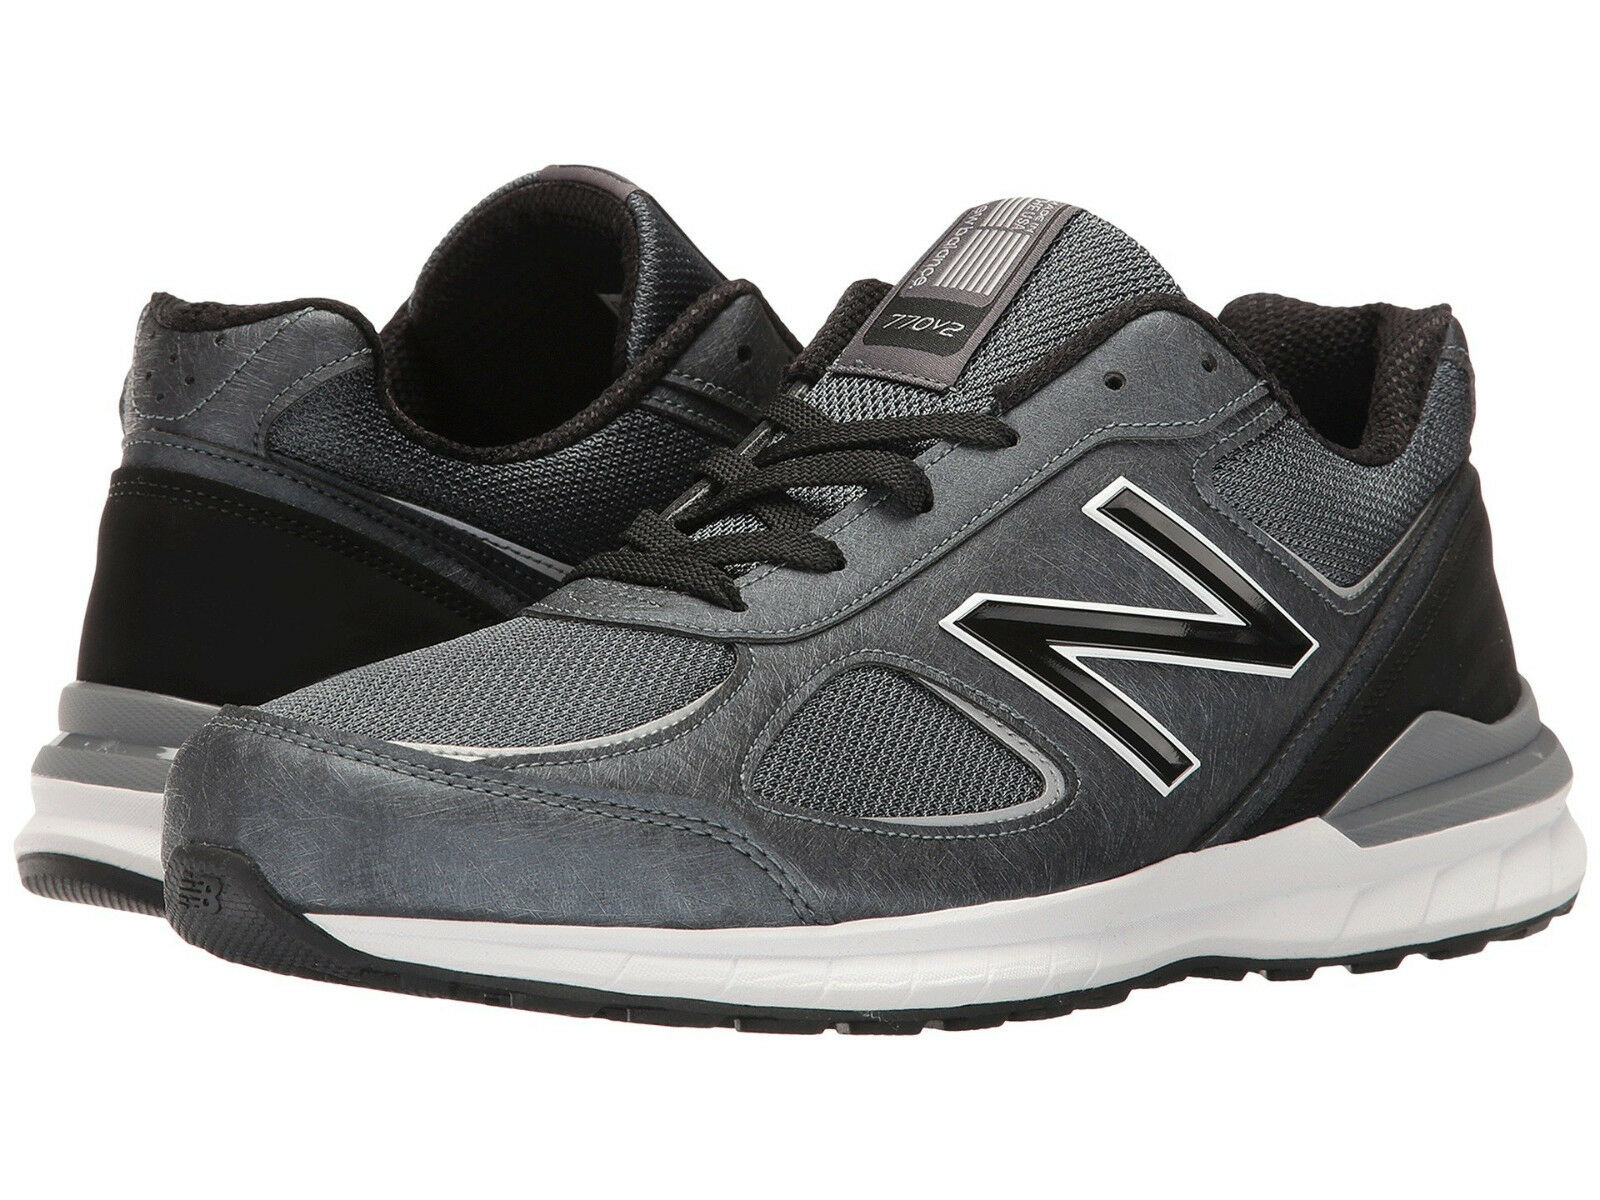 New Balance Men's 770 US 11 2E Grey Mesh Running Sneakers shoes USA  130.00